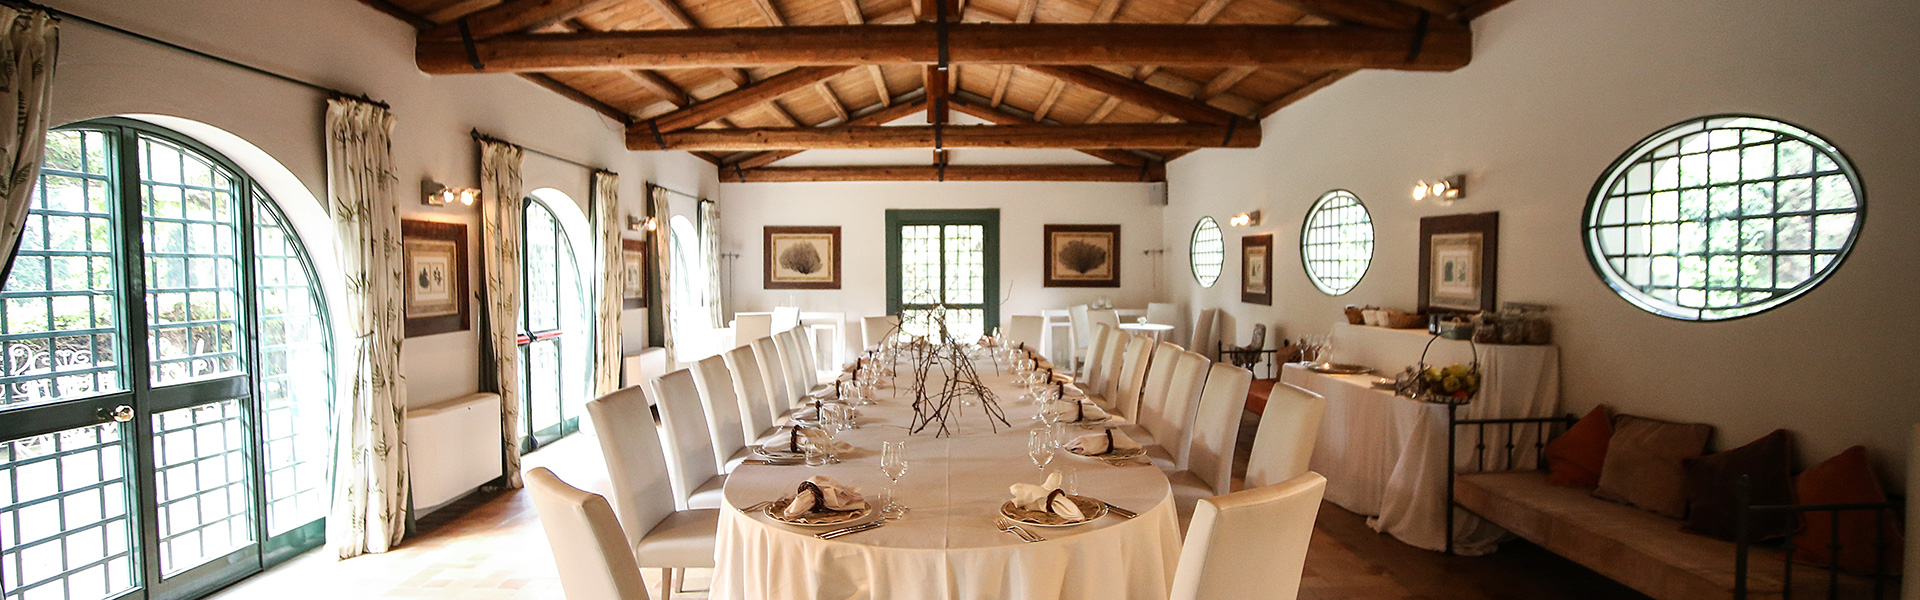 residenze d epoca chic country